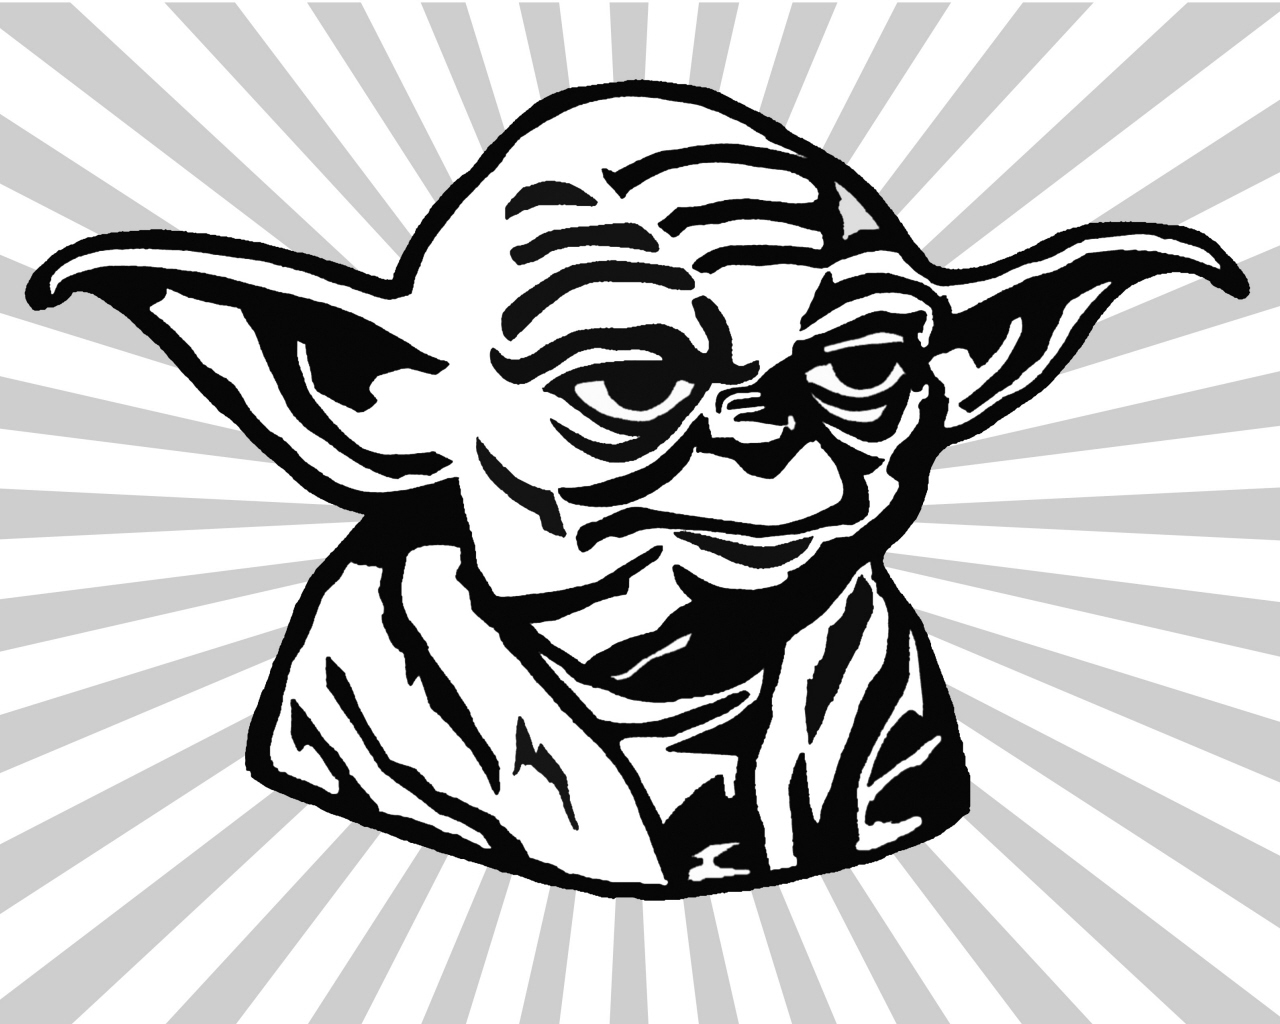 Star Wars Yoda Black And White Clipart - Clipart Kid